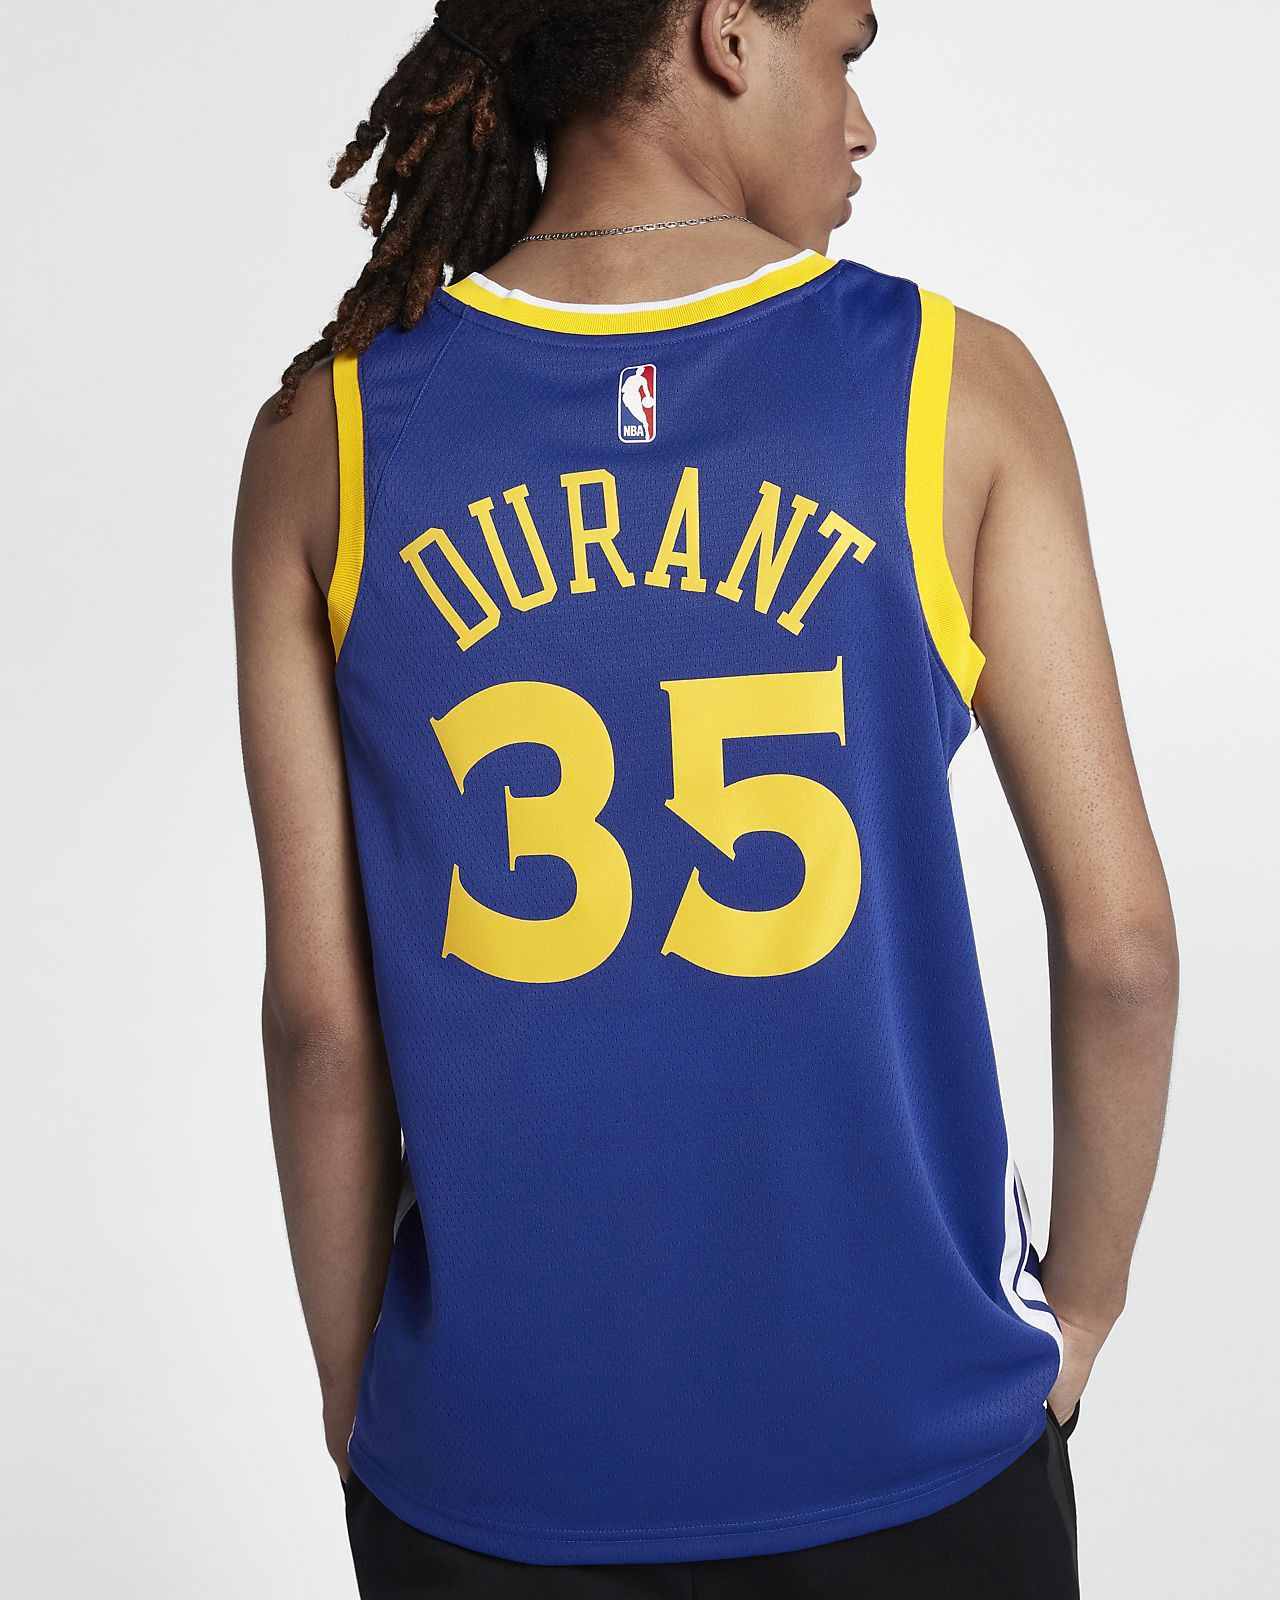 e8a3f4546d4 Nike Kevin Durant Golden State Warriors Icon Edition Swingman Jersey Men s  Nba - 2Xl (56)